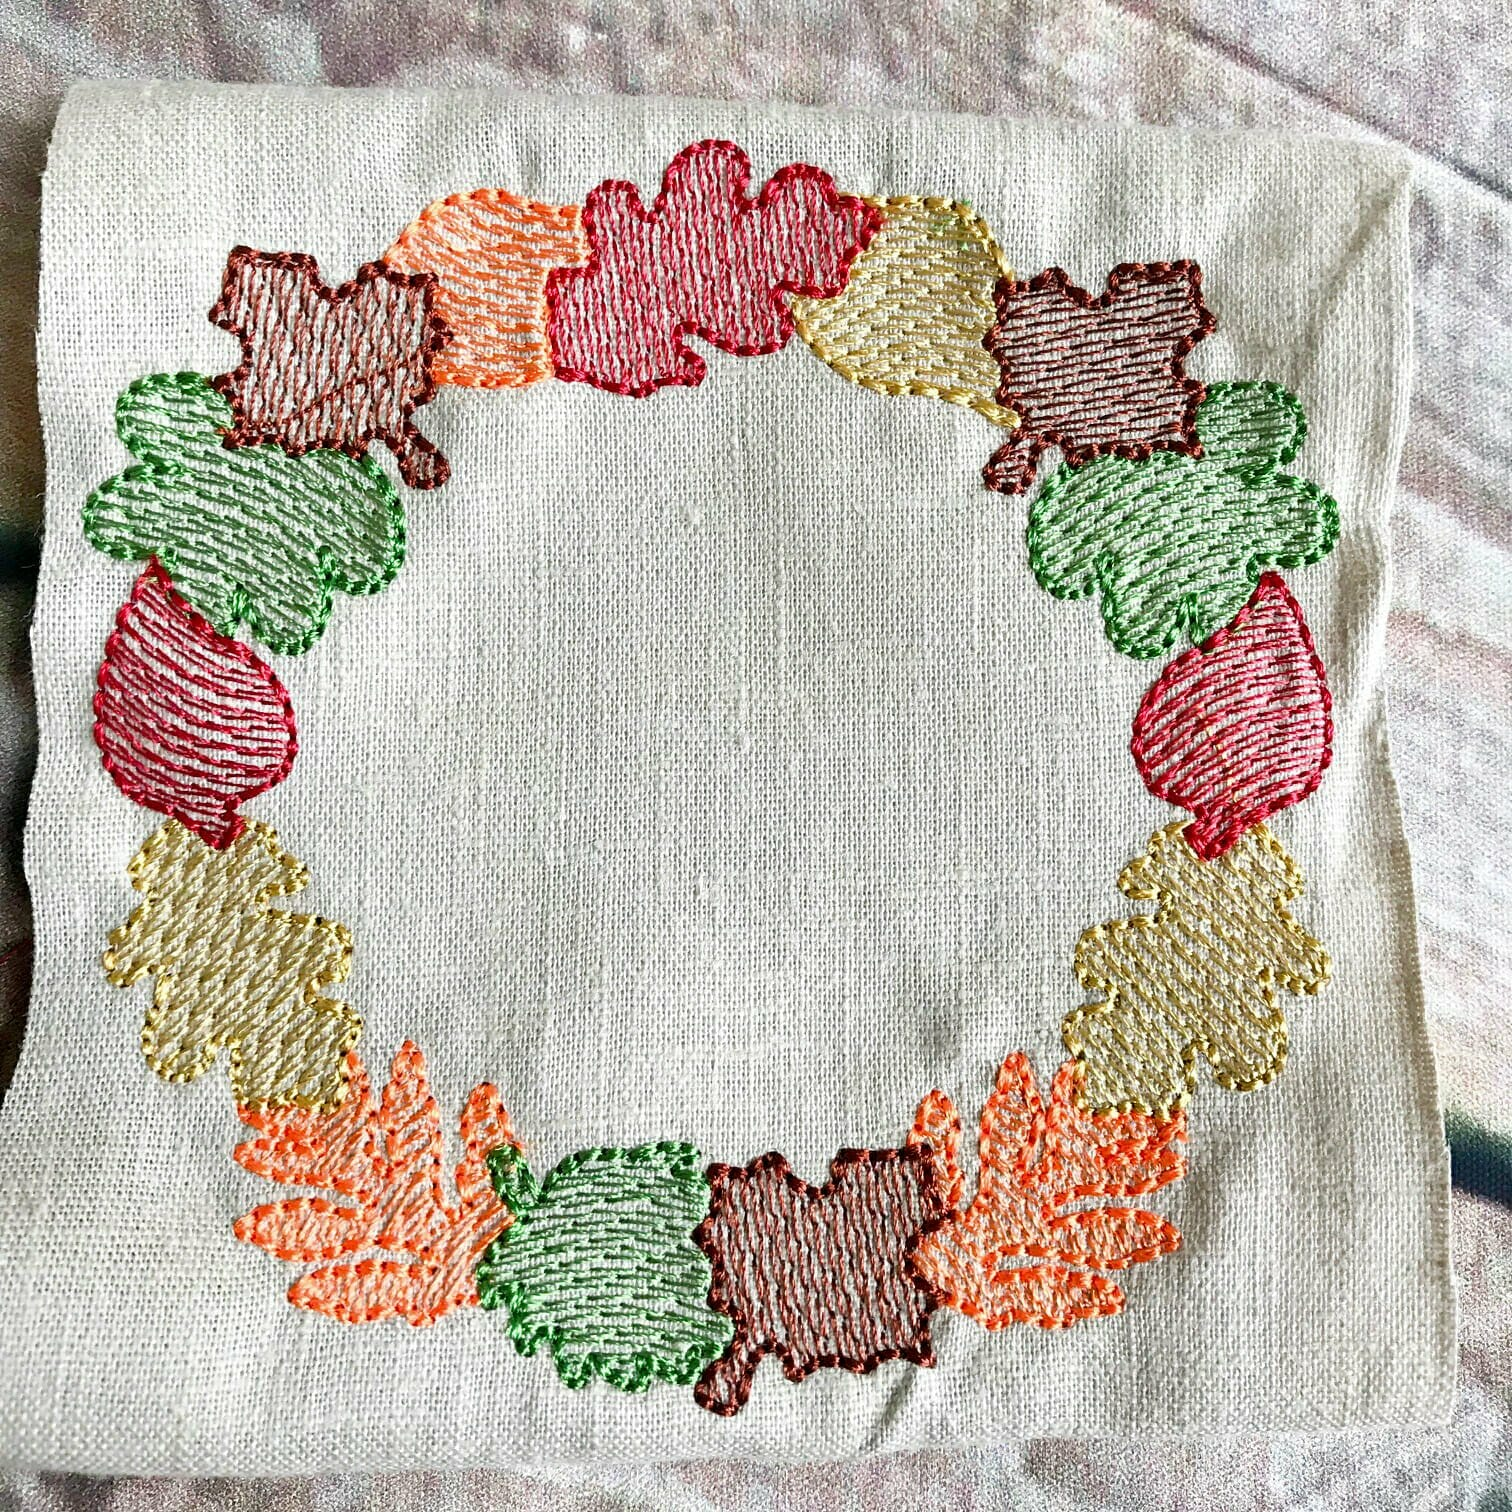 Light Fill Fall Leaf Frame Embroidery Design | Joy Kate Designs